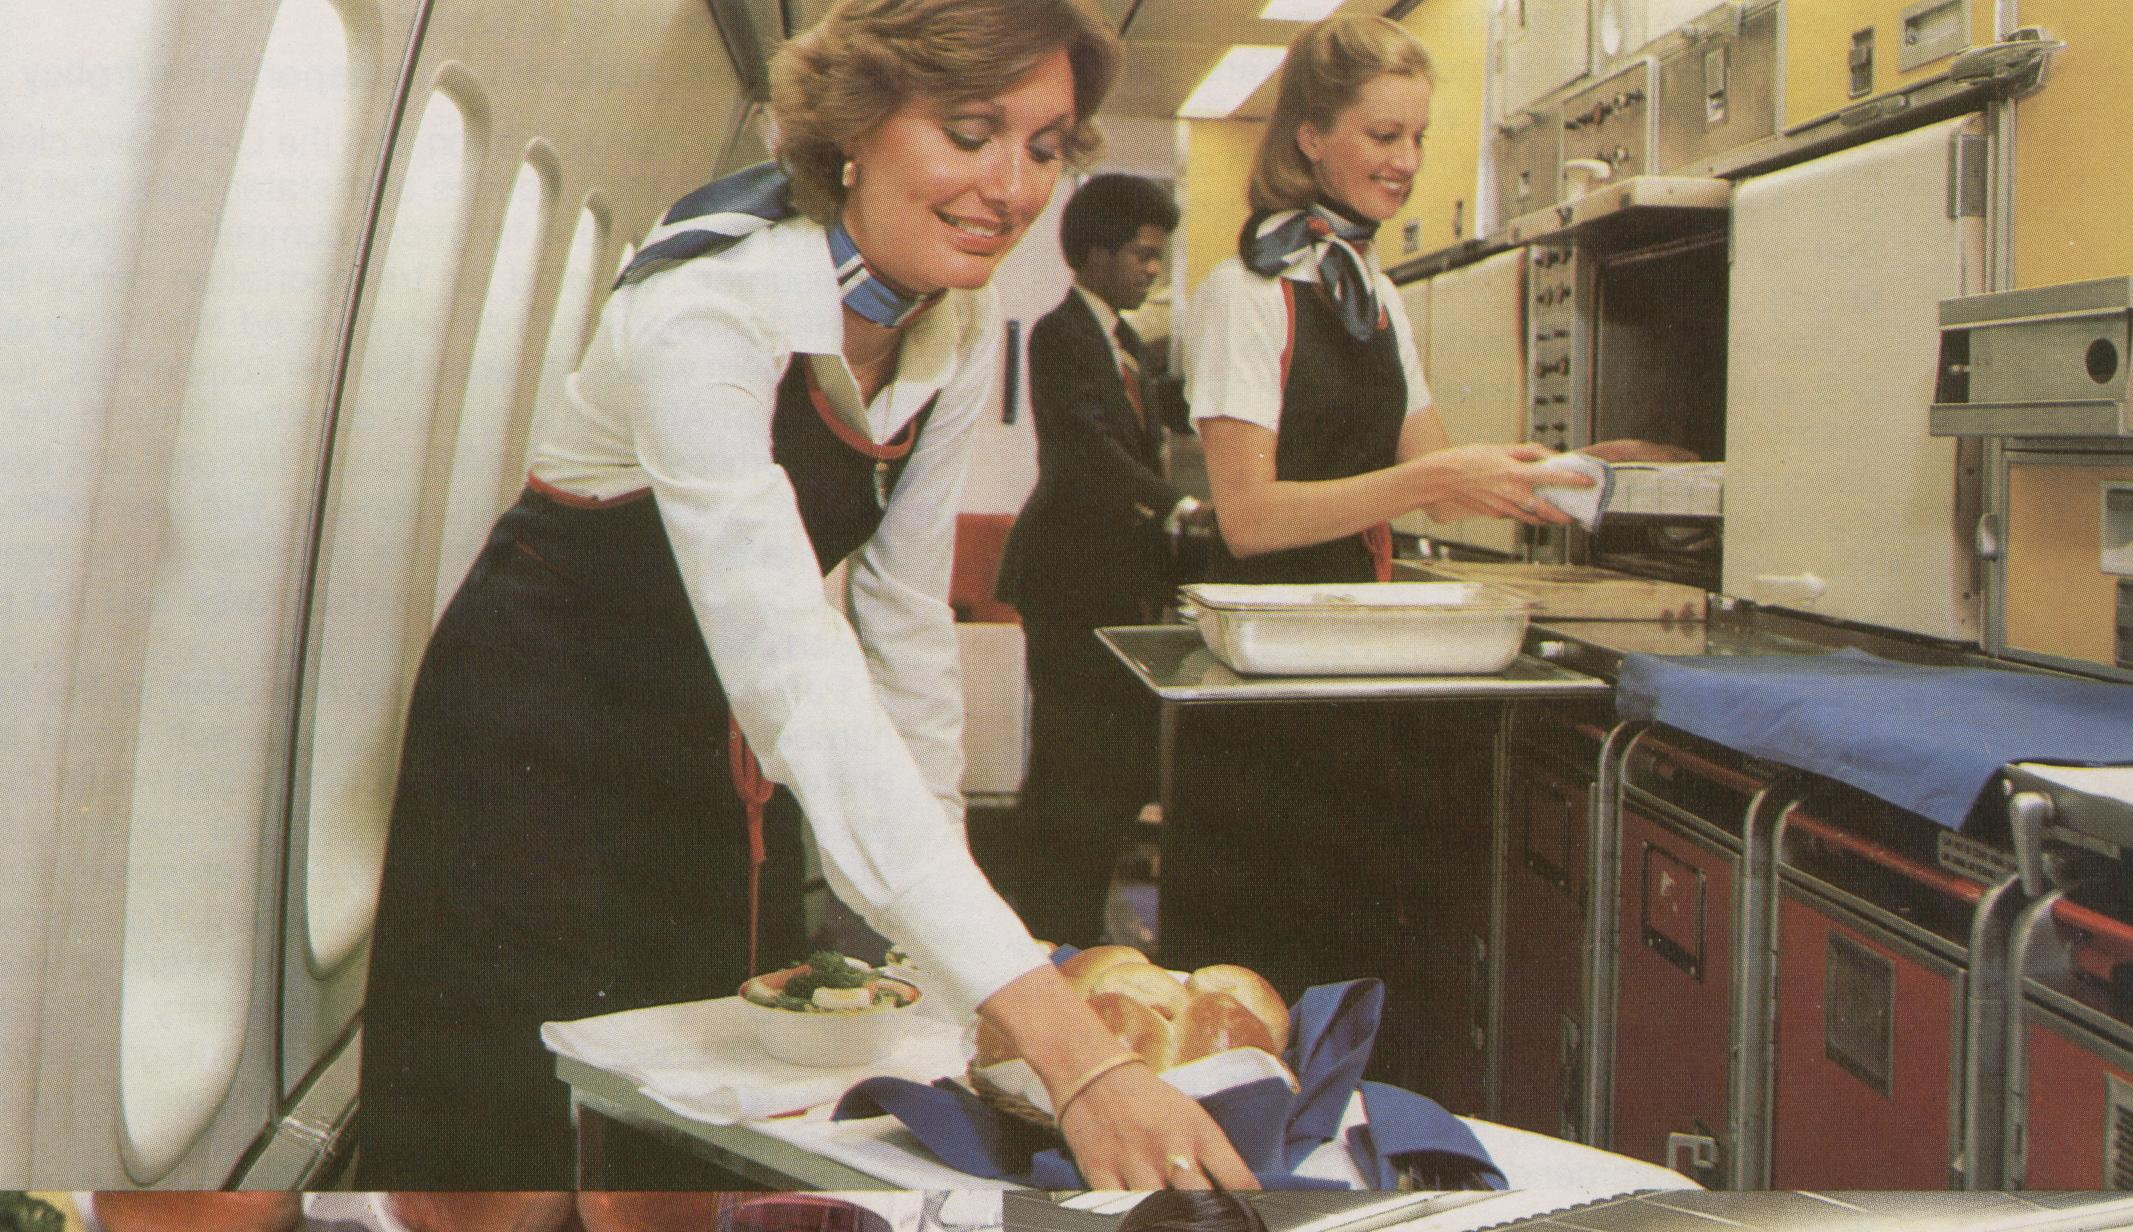 1977 Crew members prepare a meal in the galley of a Pan Am Boeing 747SP.  Sue Smith prepares the cart.  Judy Skartvedt is standing by the open oven and  Antonio Gooding is working at the rear of the galley.